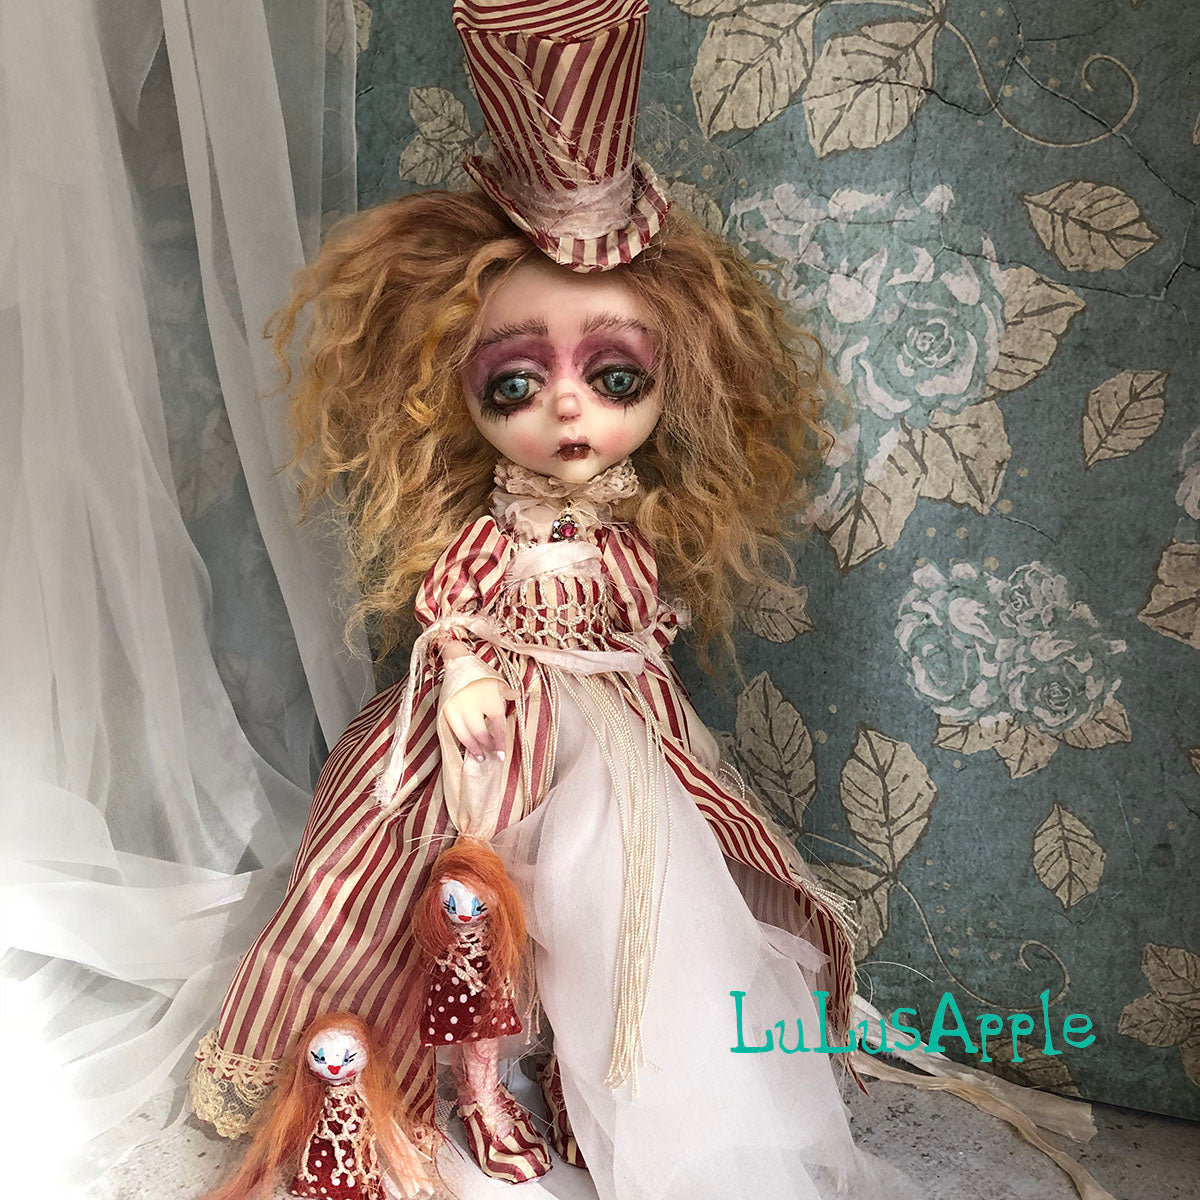 Ann the Dressmakers Wife Victorian Winter OOAK Art Doll LuLusApple